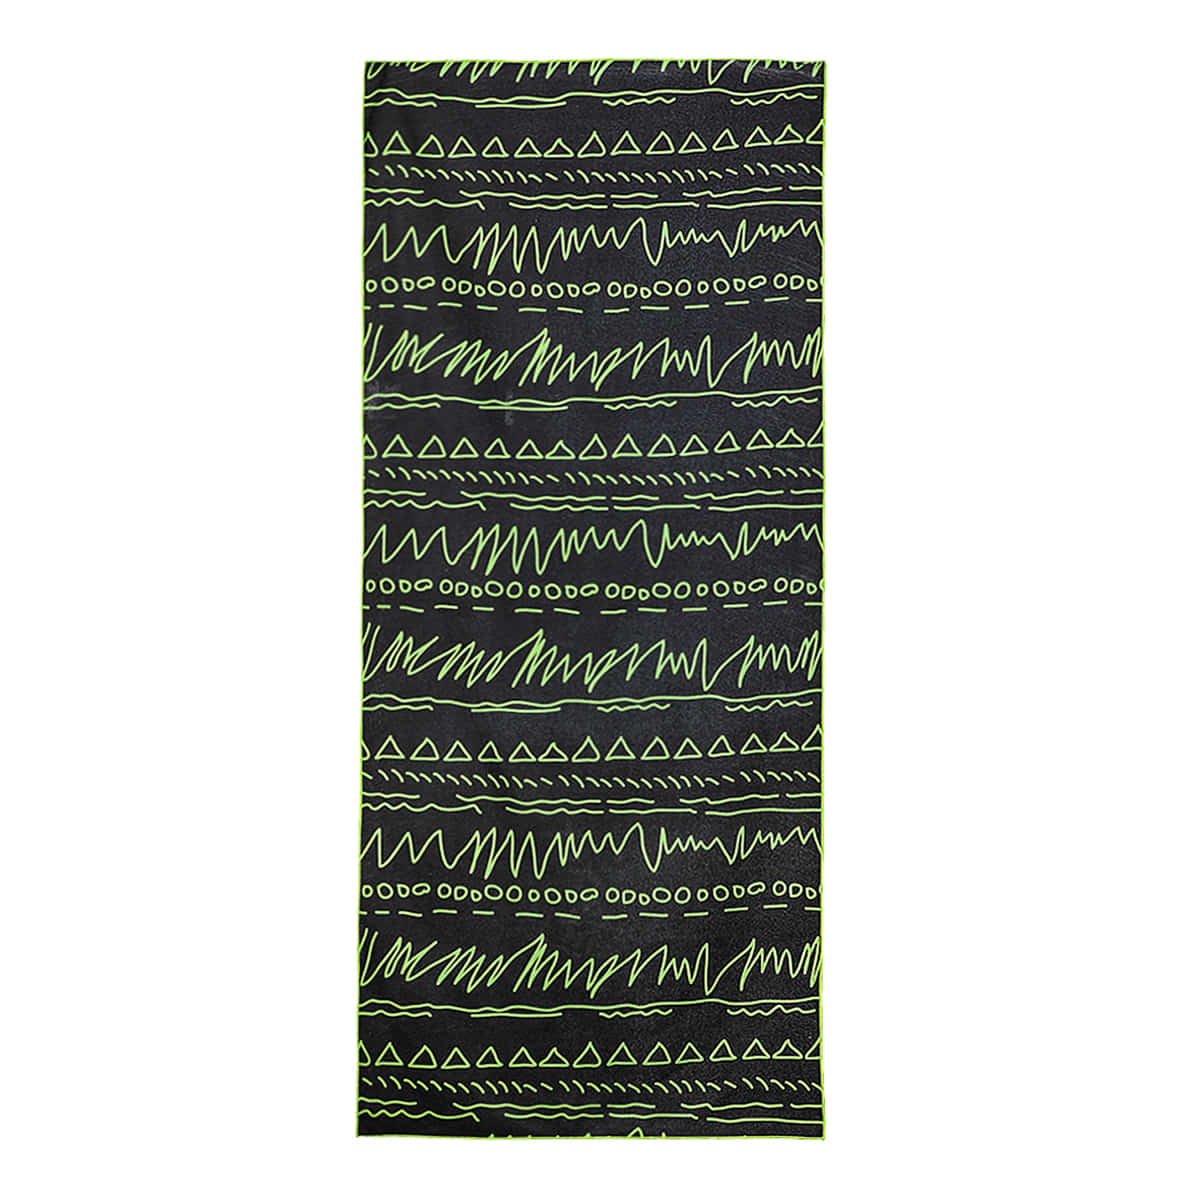 YOGA TOWEL Green Black